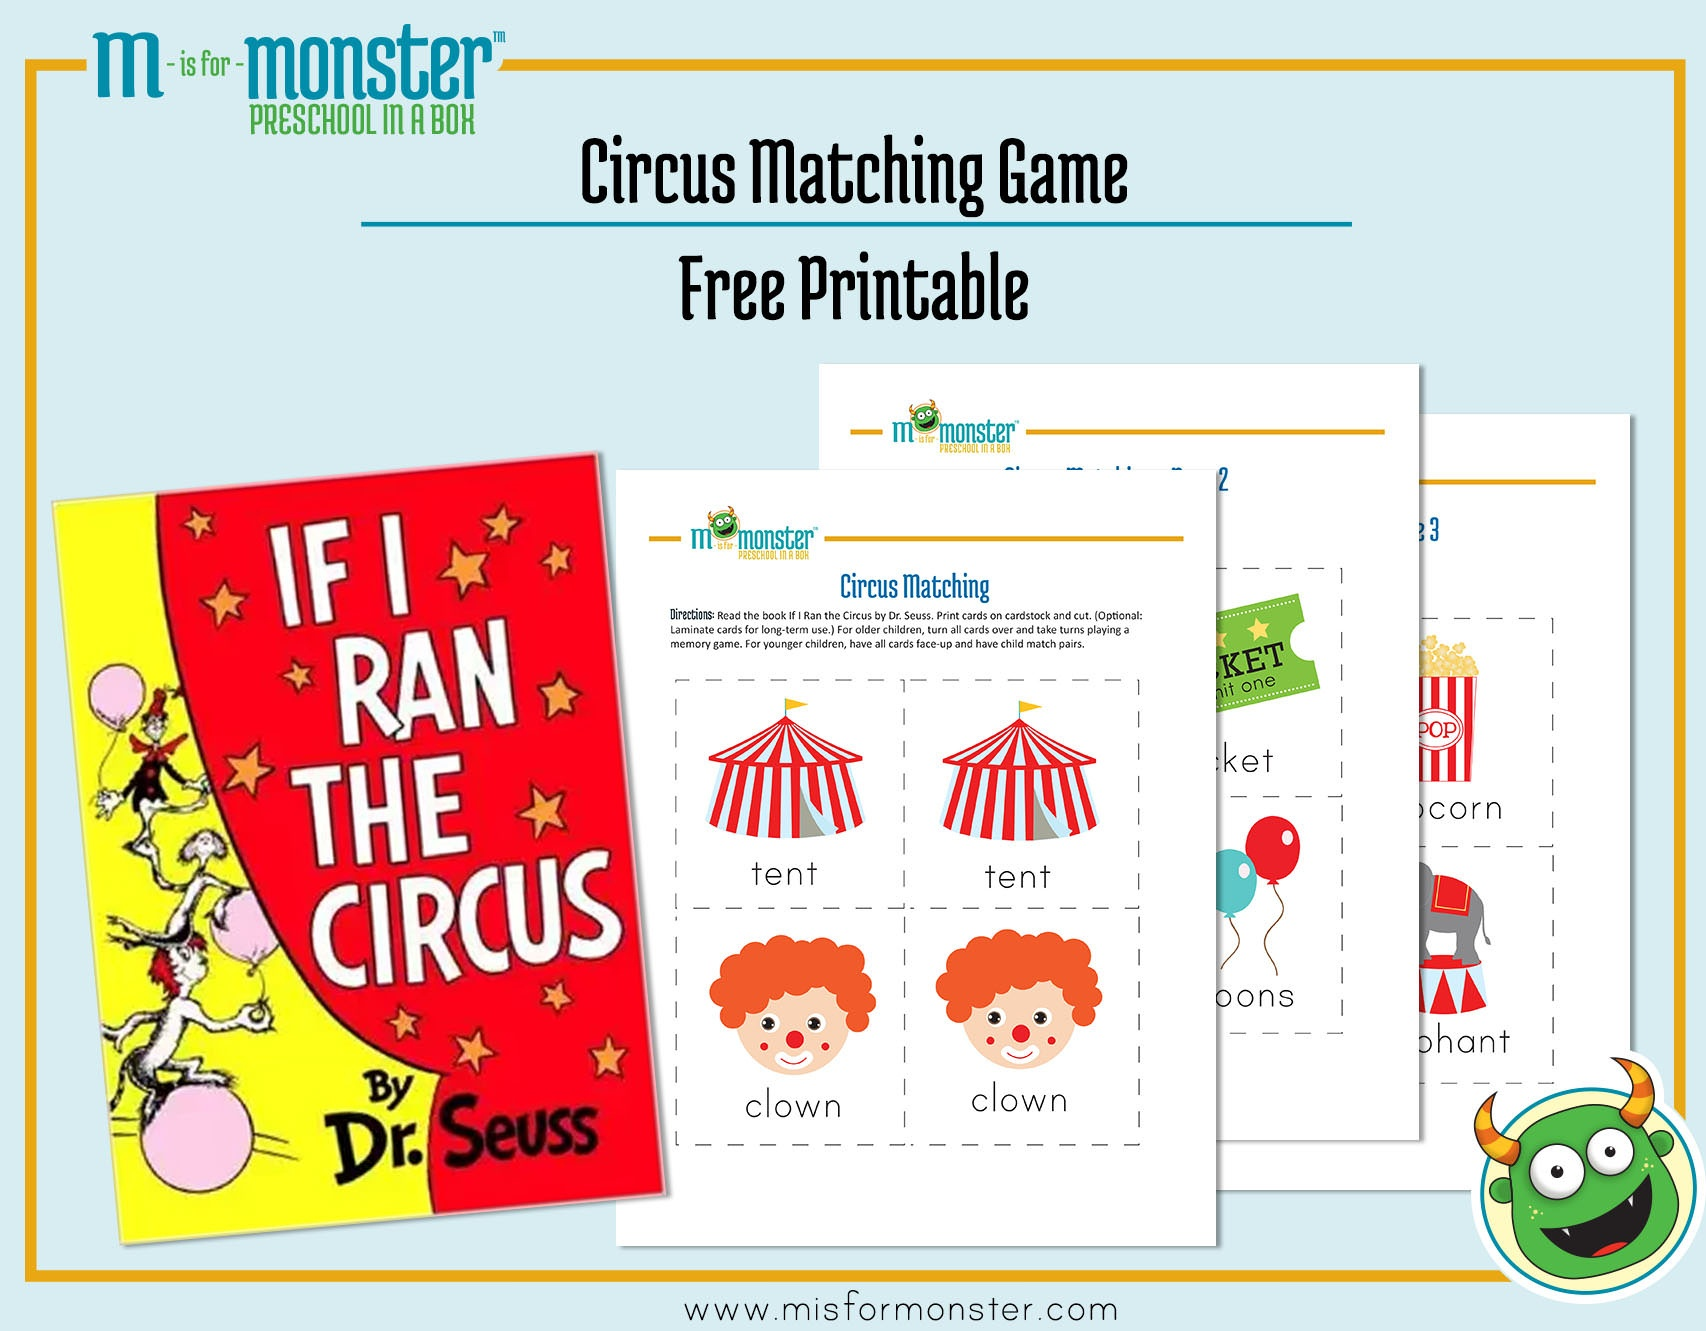 Carnival Week Free Printable   M Is For Monster - Free Printable Toddler Matching Games